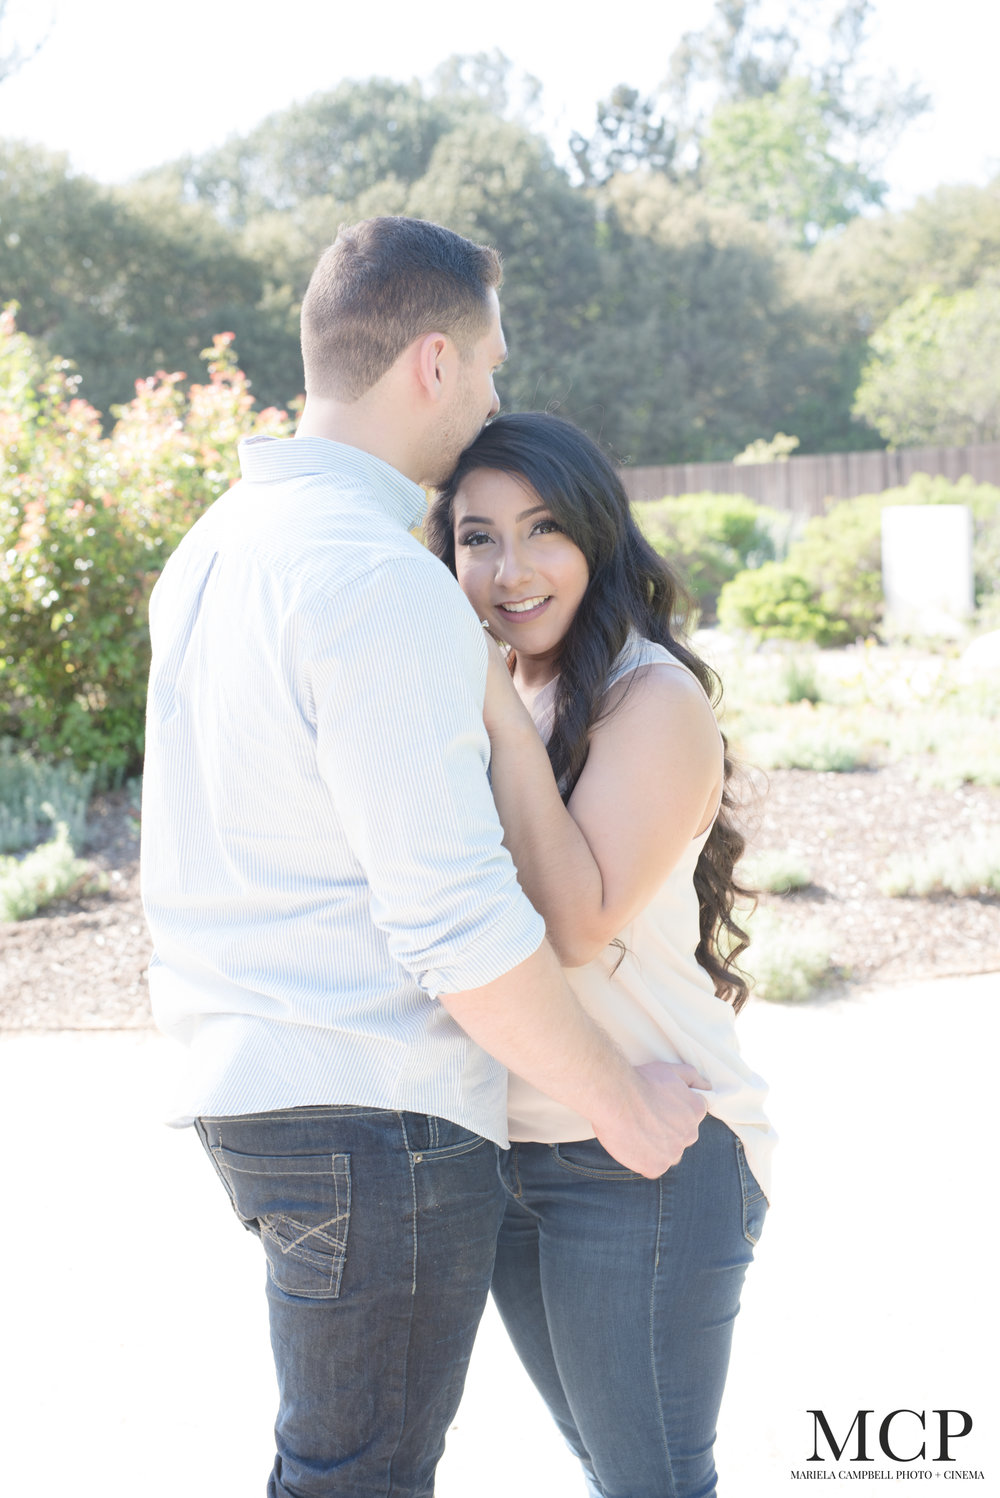 Marissa & Richard Engagement - MCP-13.jpg